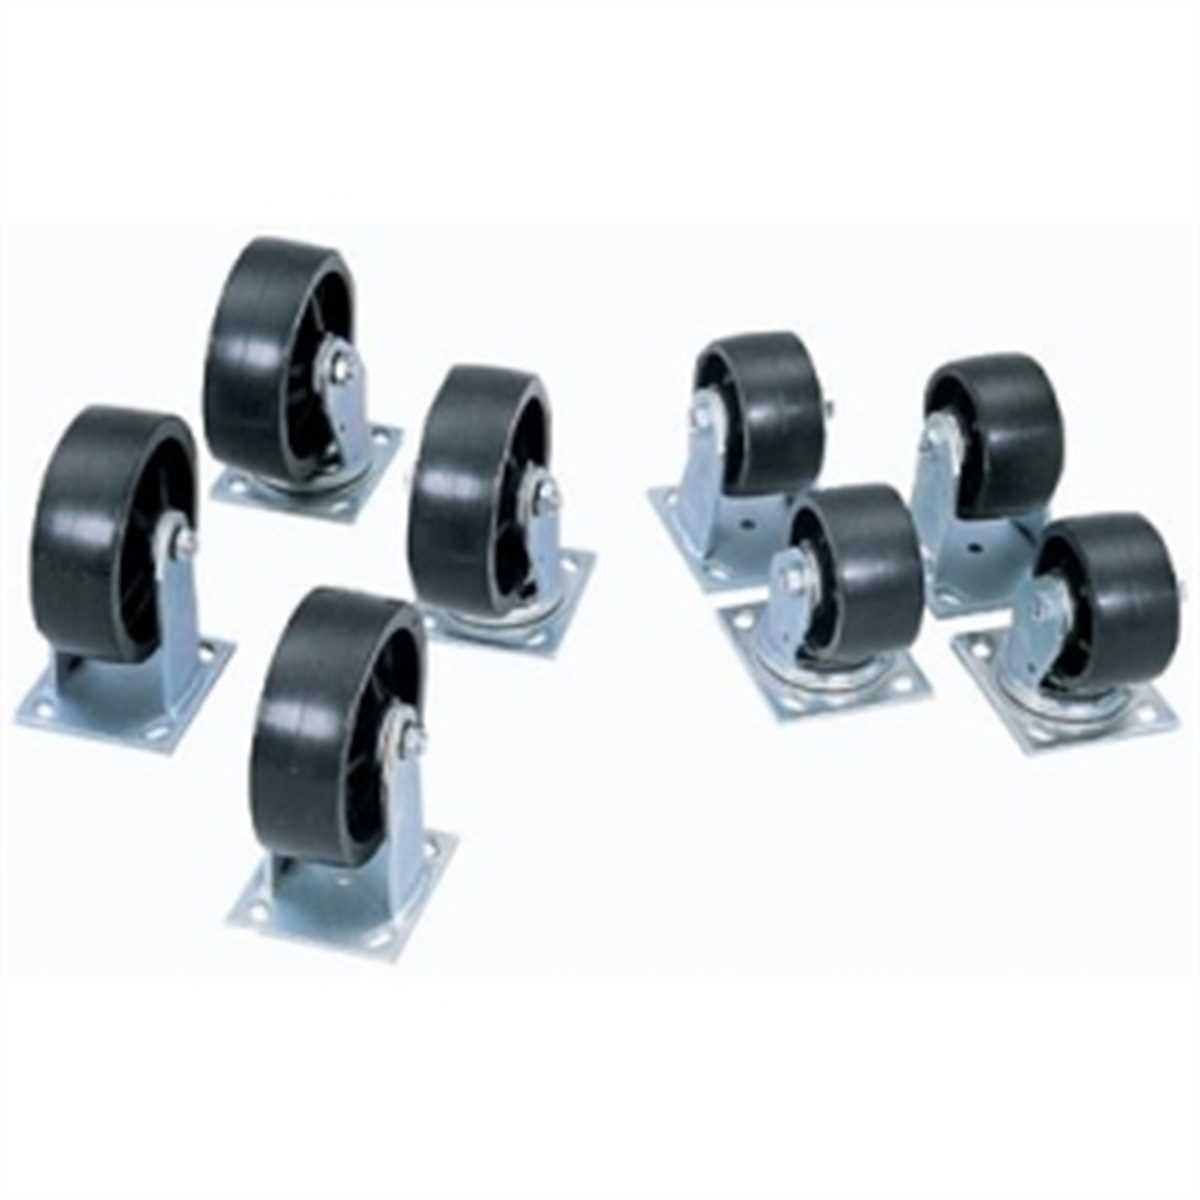 "4"" CASTER SET 4PC FOR JOBOX & JOBSITE PRODUCTS 217-1-320990 Industrial caster sold by Janeice Products Co Inc."